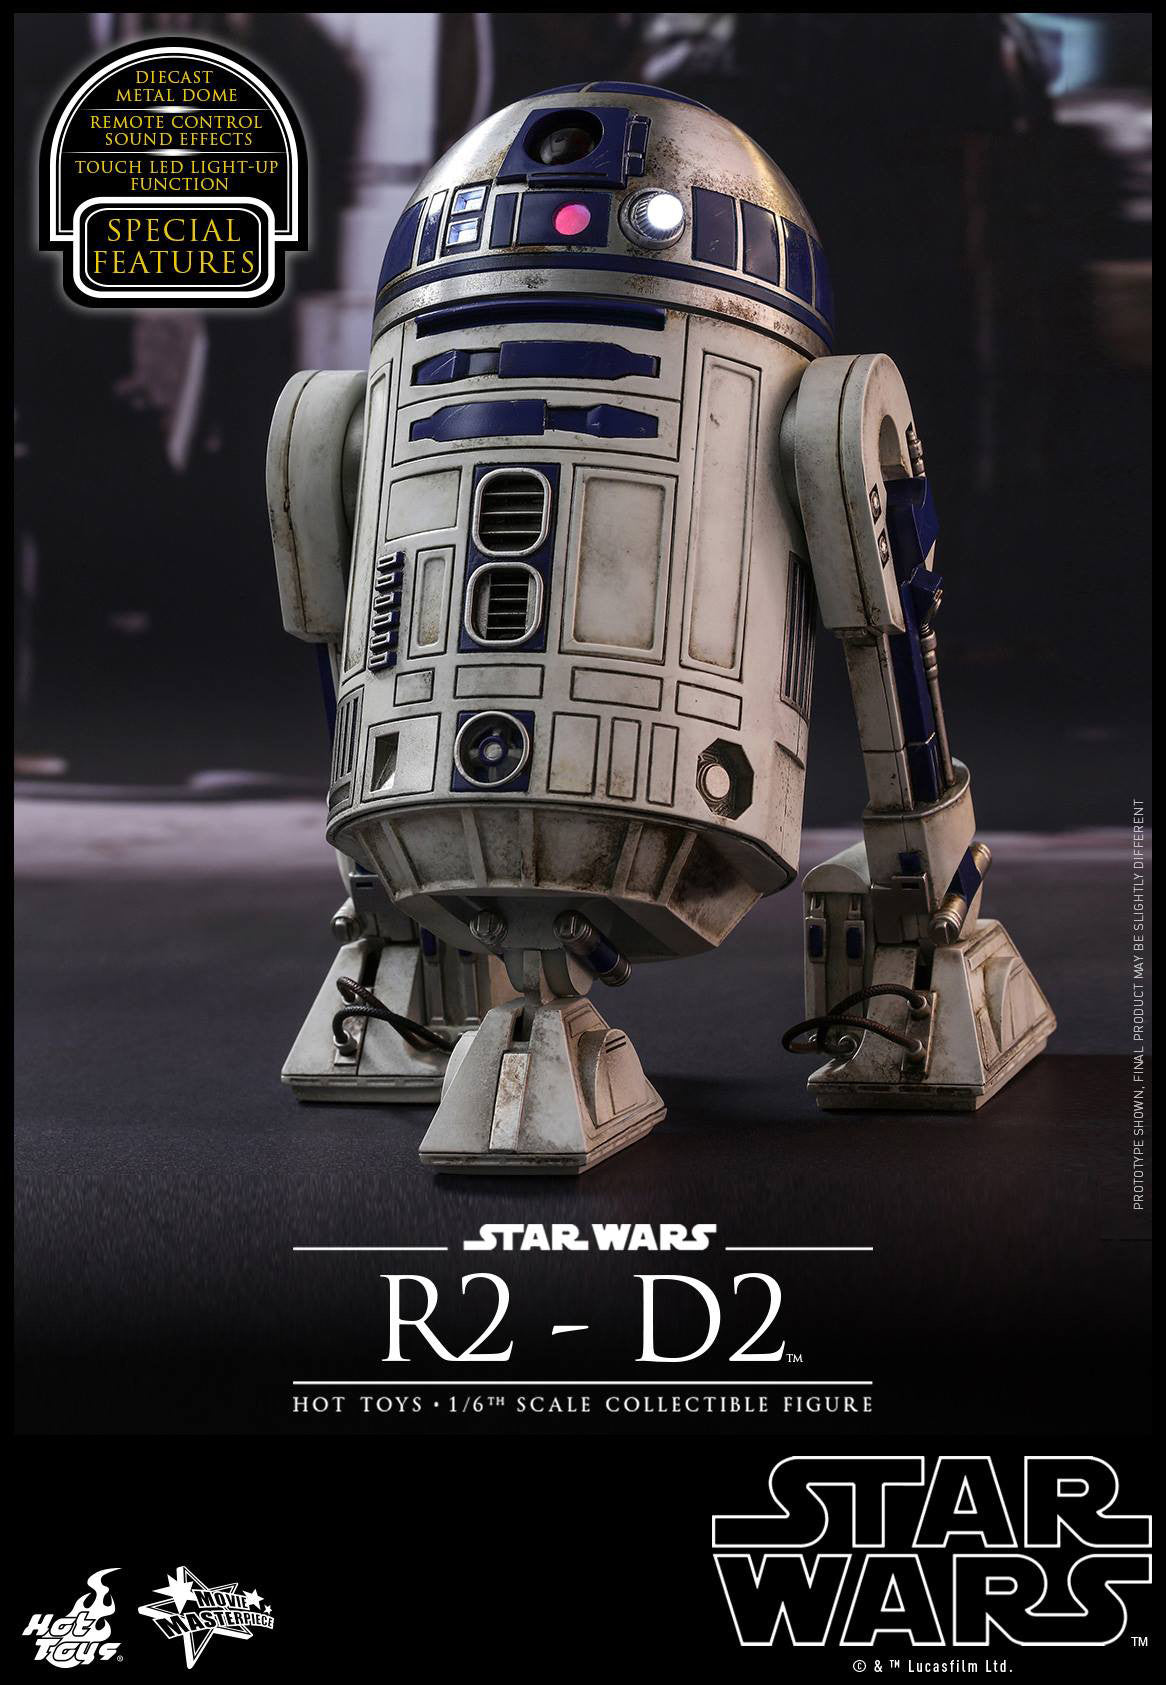 Hot Toys - MMS408 - Star Wars: The Force Awakens - R2-D2 - Marvelous Toys - 1